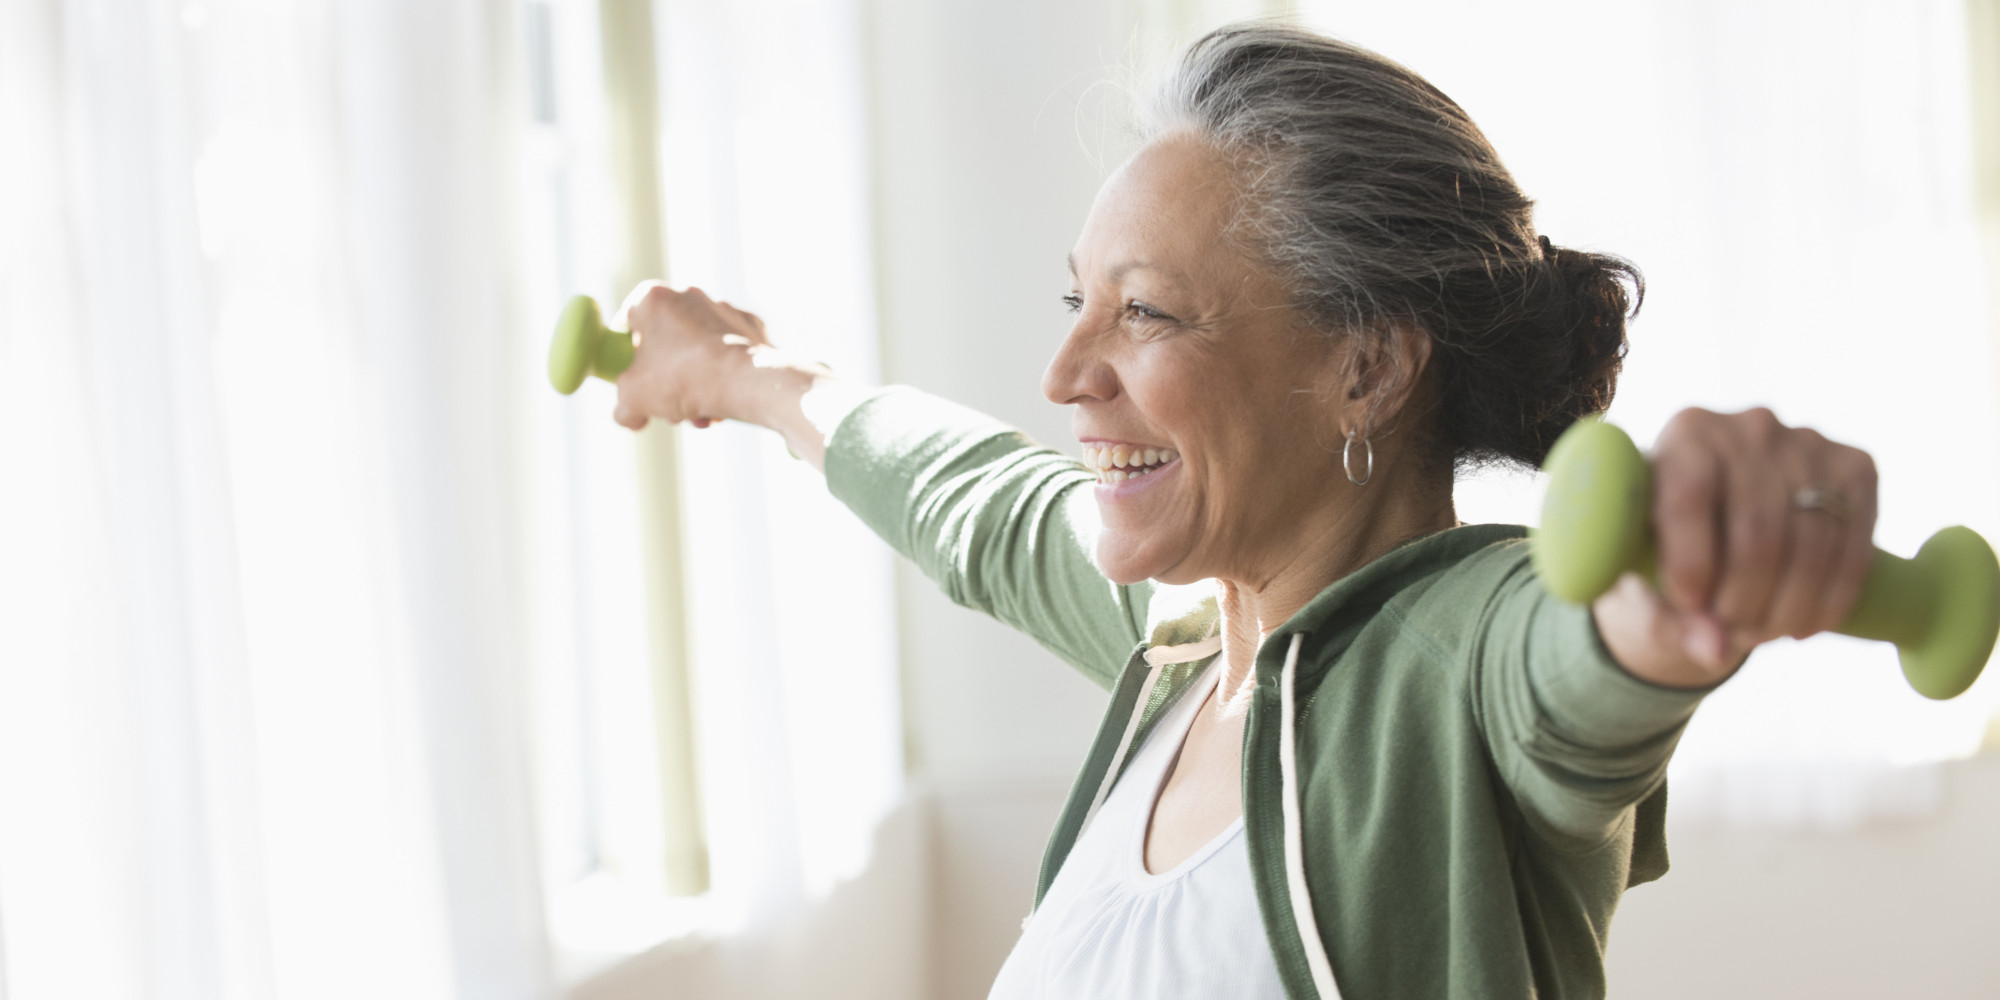 life expectancy increase Average life expectancy is set to increase in many countries by 2030 - and will exceed 90 years in south korea, according to new research the study, led by scientists from imperial college london in collaboration with the world health organization, analysed long-term data on mortality and longevity .